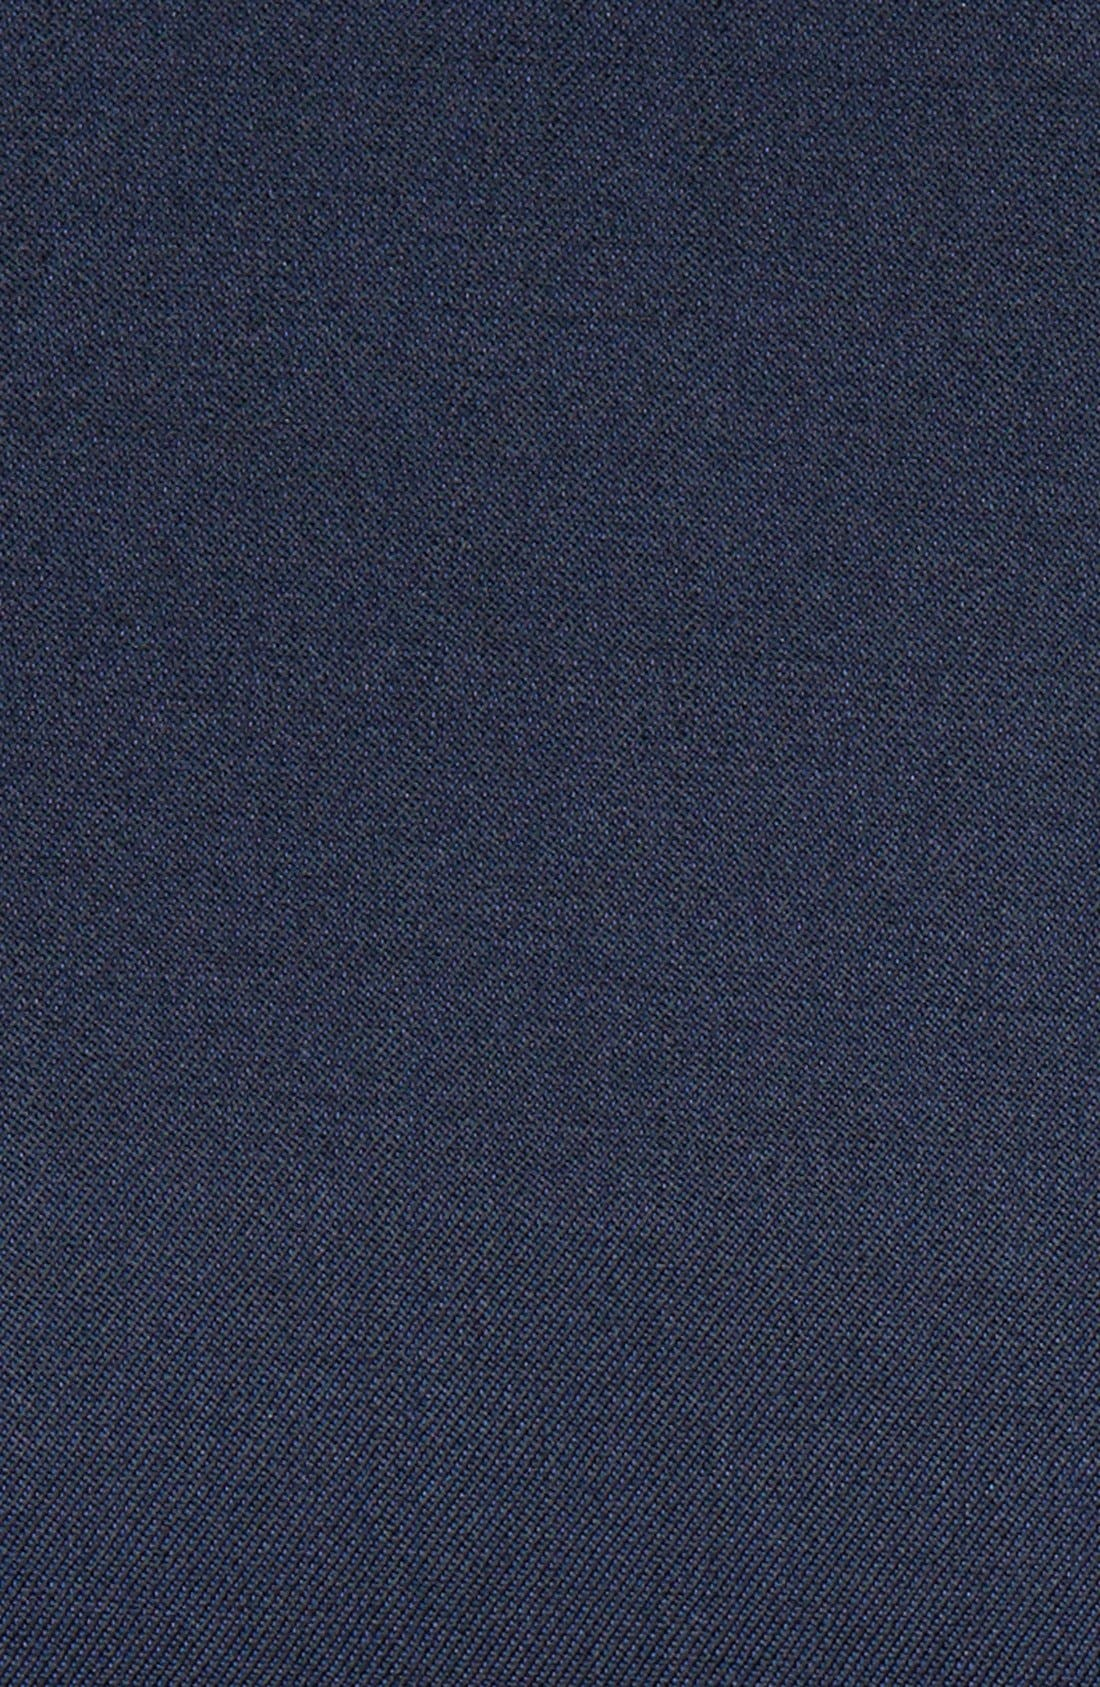 TED BAKER LONDON, Josh Trim Fit Navy Shawl Lapel Tuxedo, Alternate thumbnail 9, color, NAVY BLUE